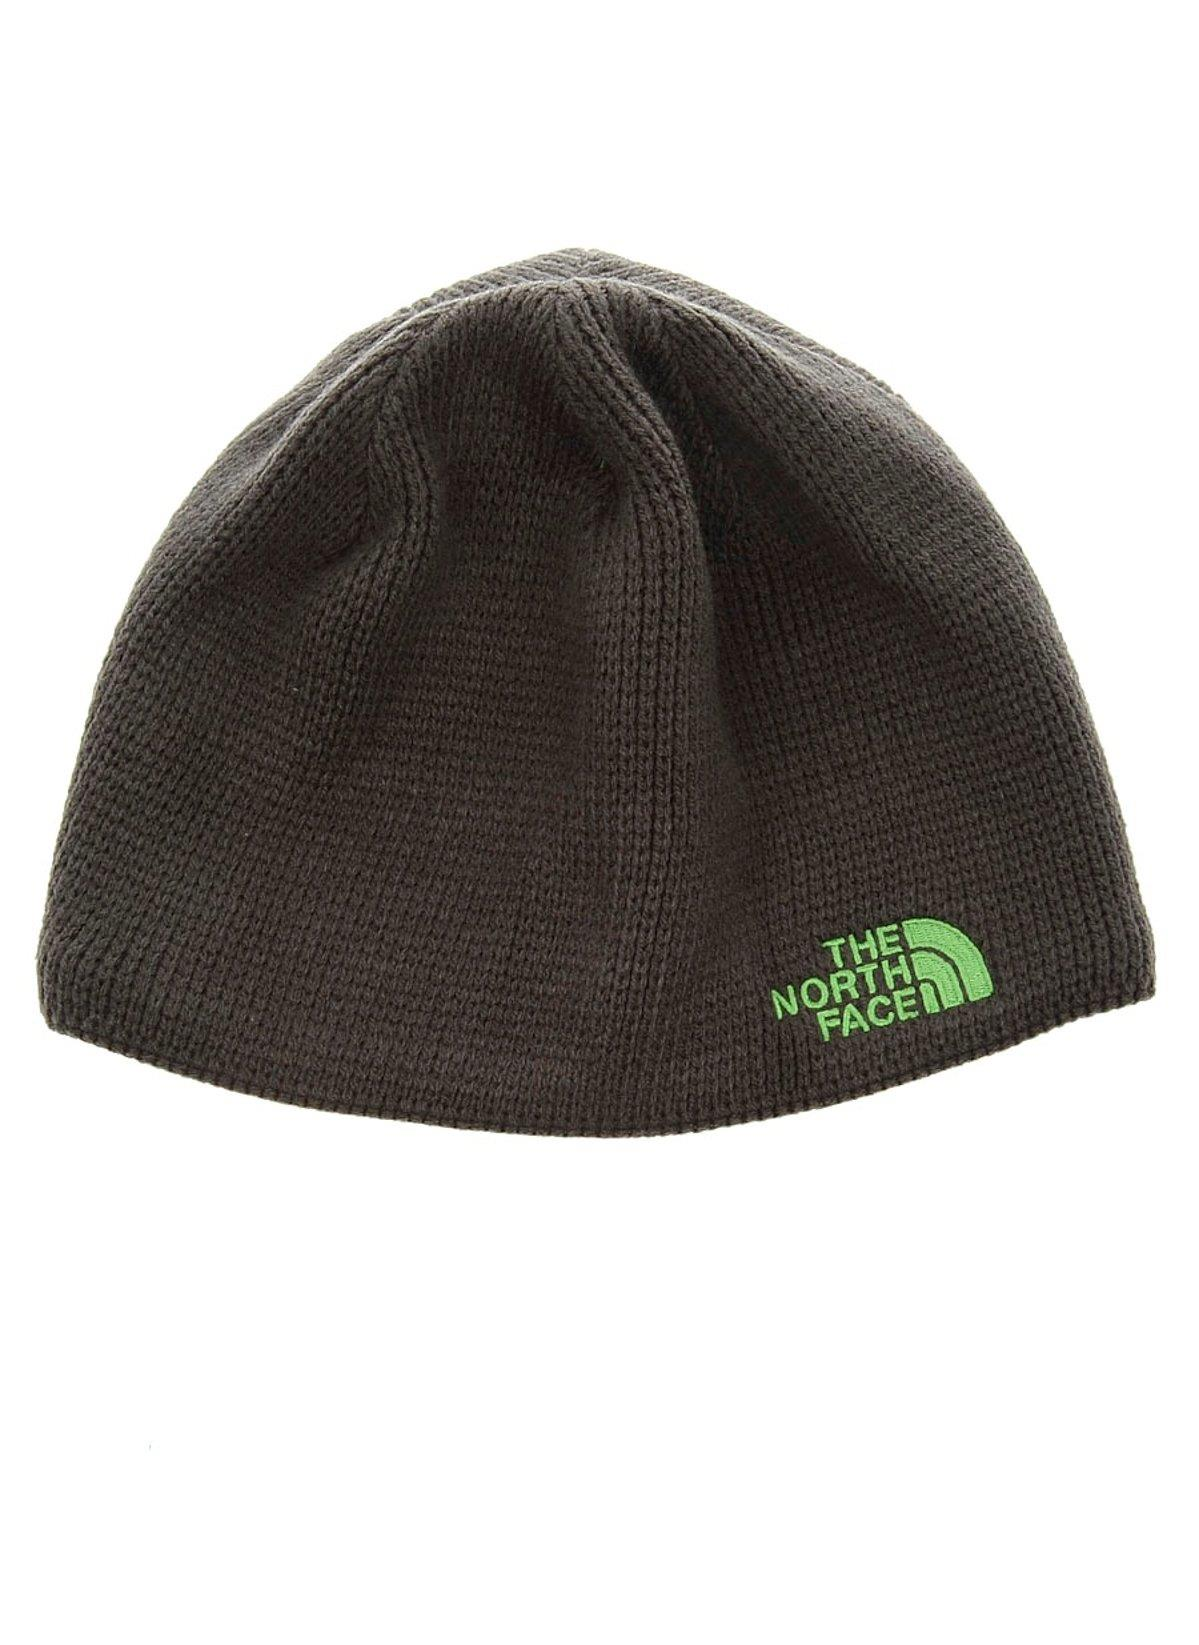 The North Face Youth Bones Beanie T0A60J044